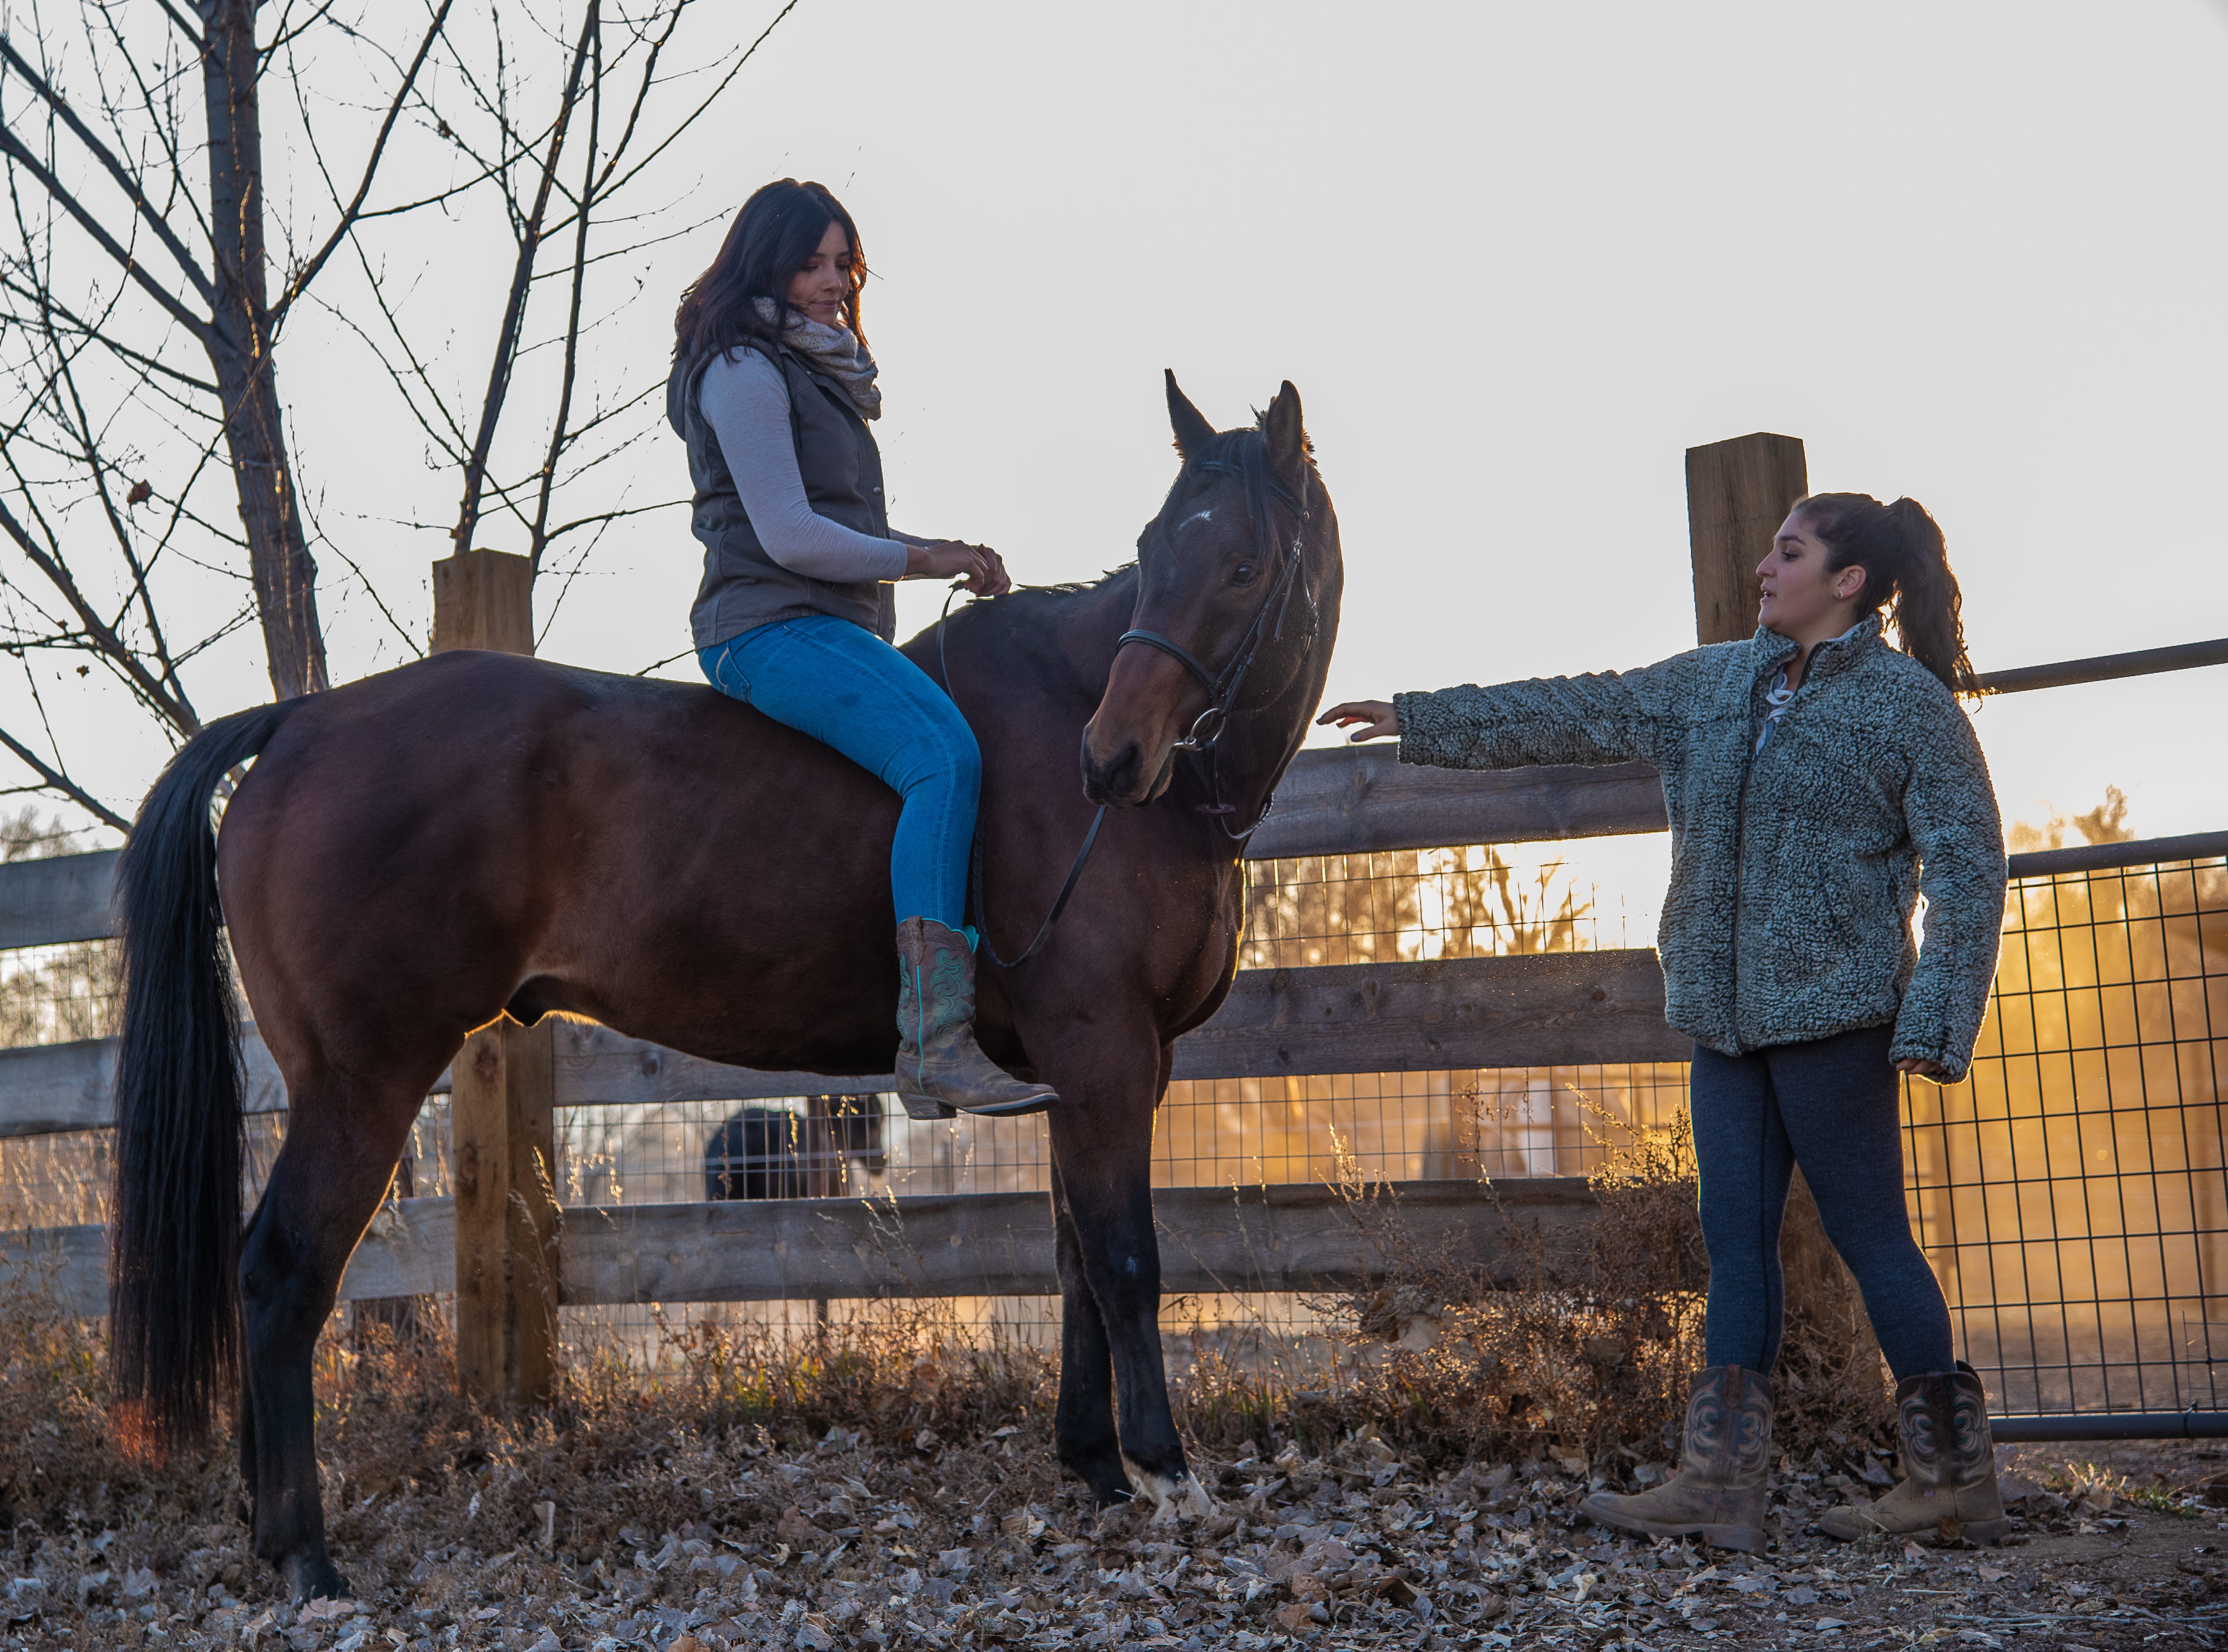 CSU student Kassidy Webber prepares to take Chance, her rescue horse,  for a ride in north Fort Collins on Thursday, November 8, 2018. Friend and fellow CSU student Tori Cayle gives Chance some attention before he begins his ride.